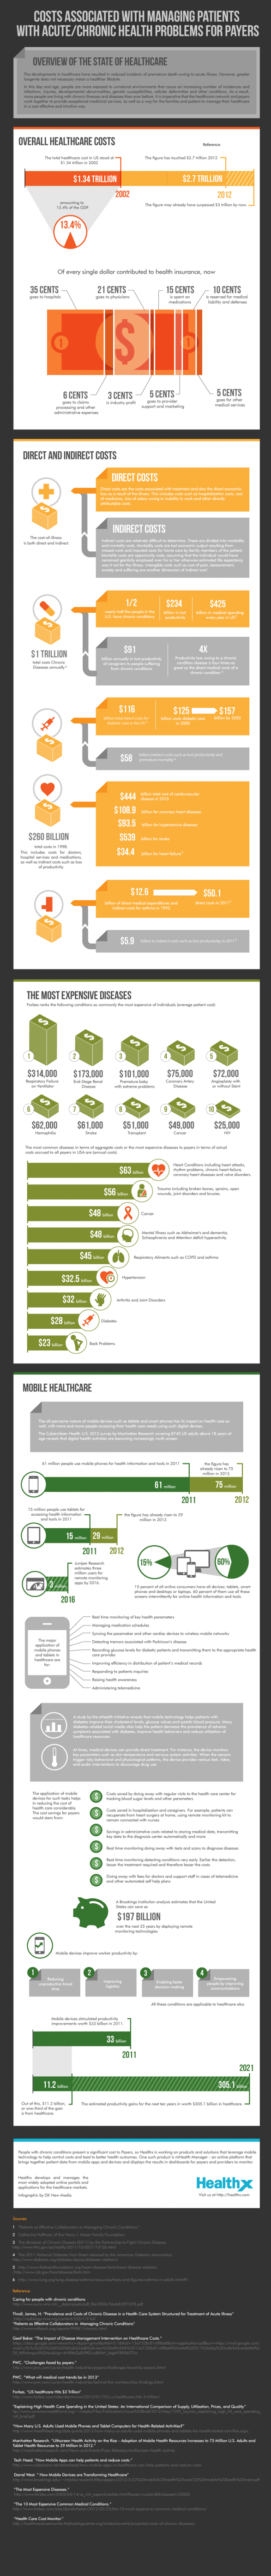 Cost Associated with Acute and Chronic Health Problems